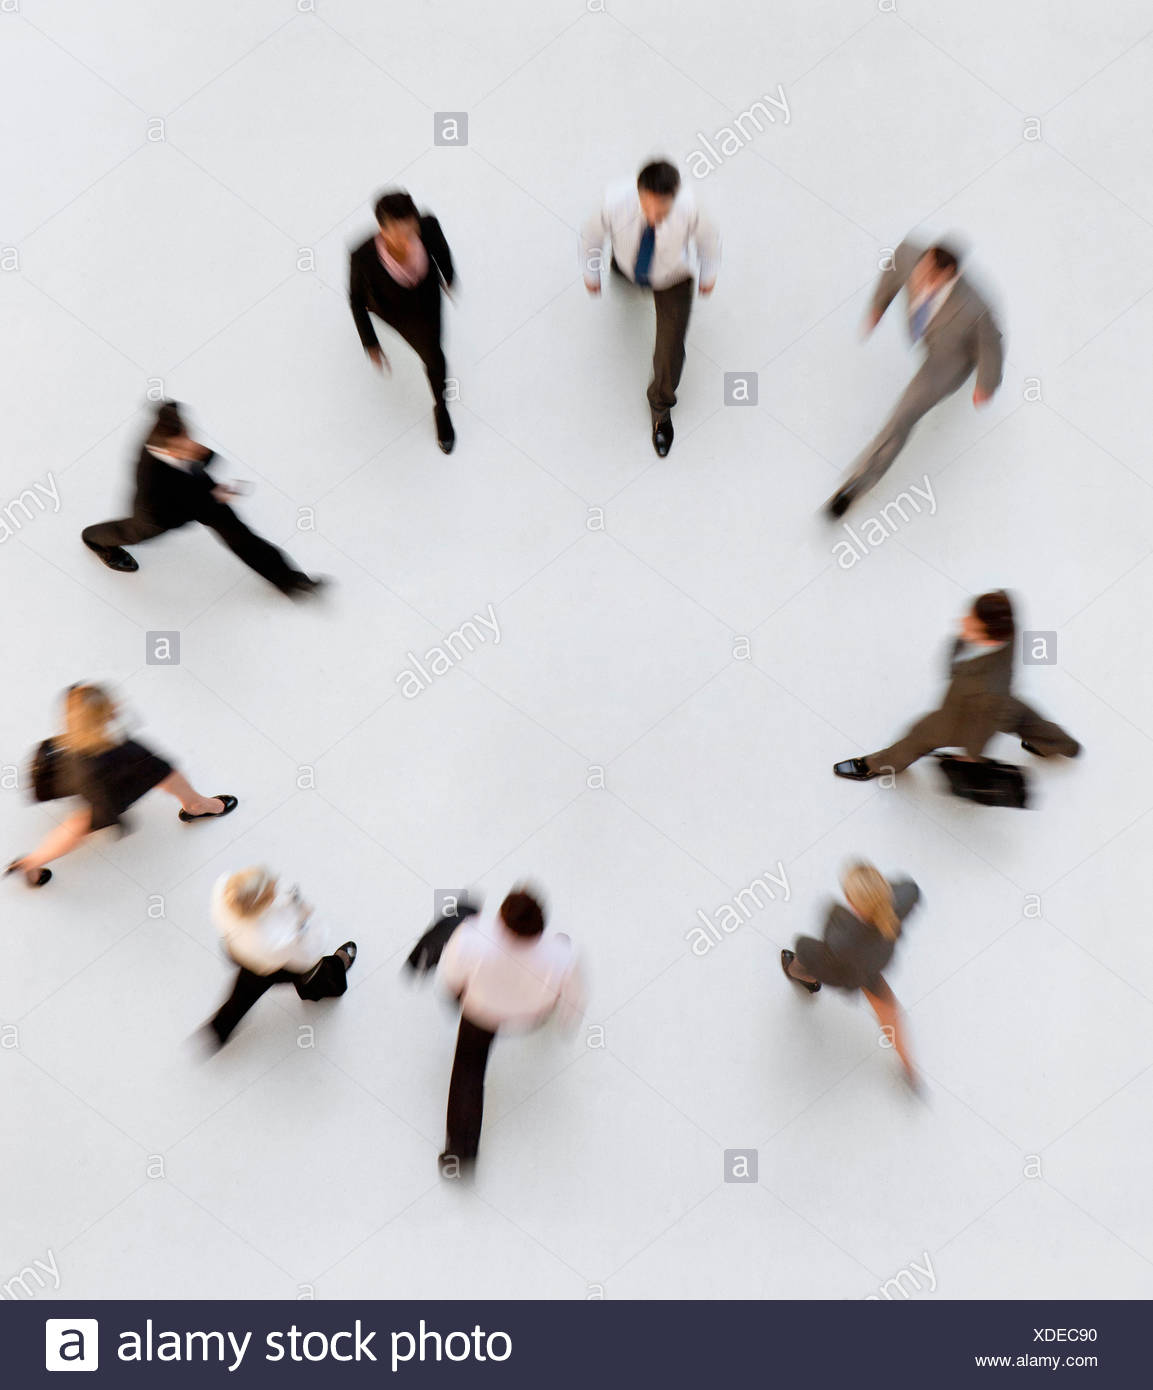 Walking business people forming a circle - Stock Image